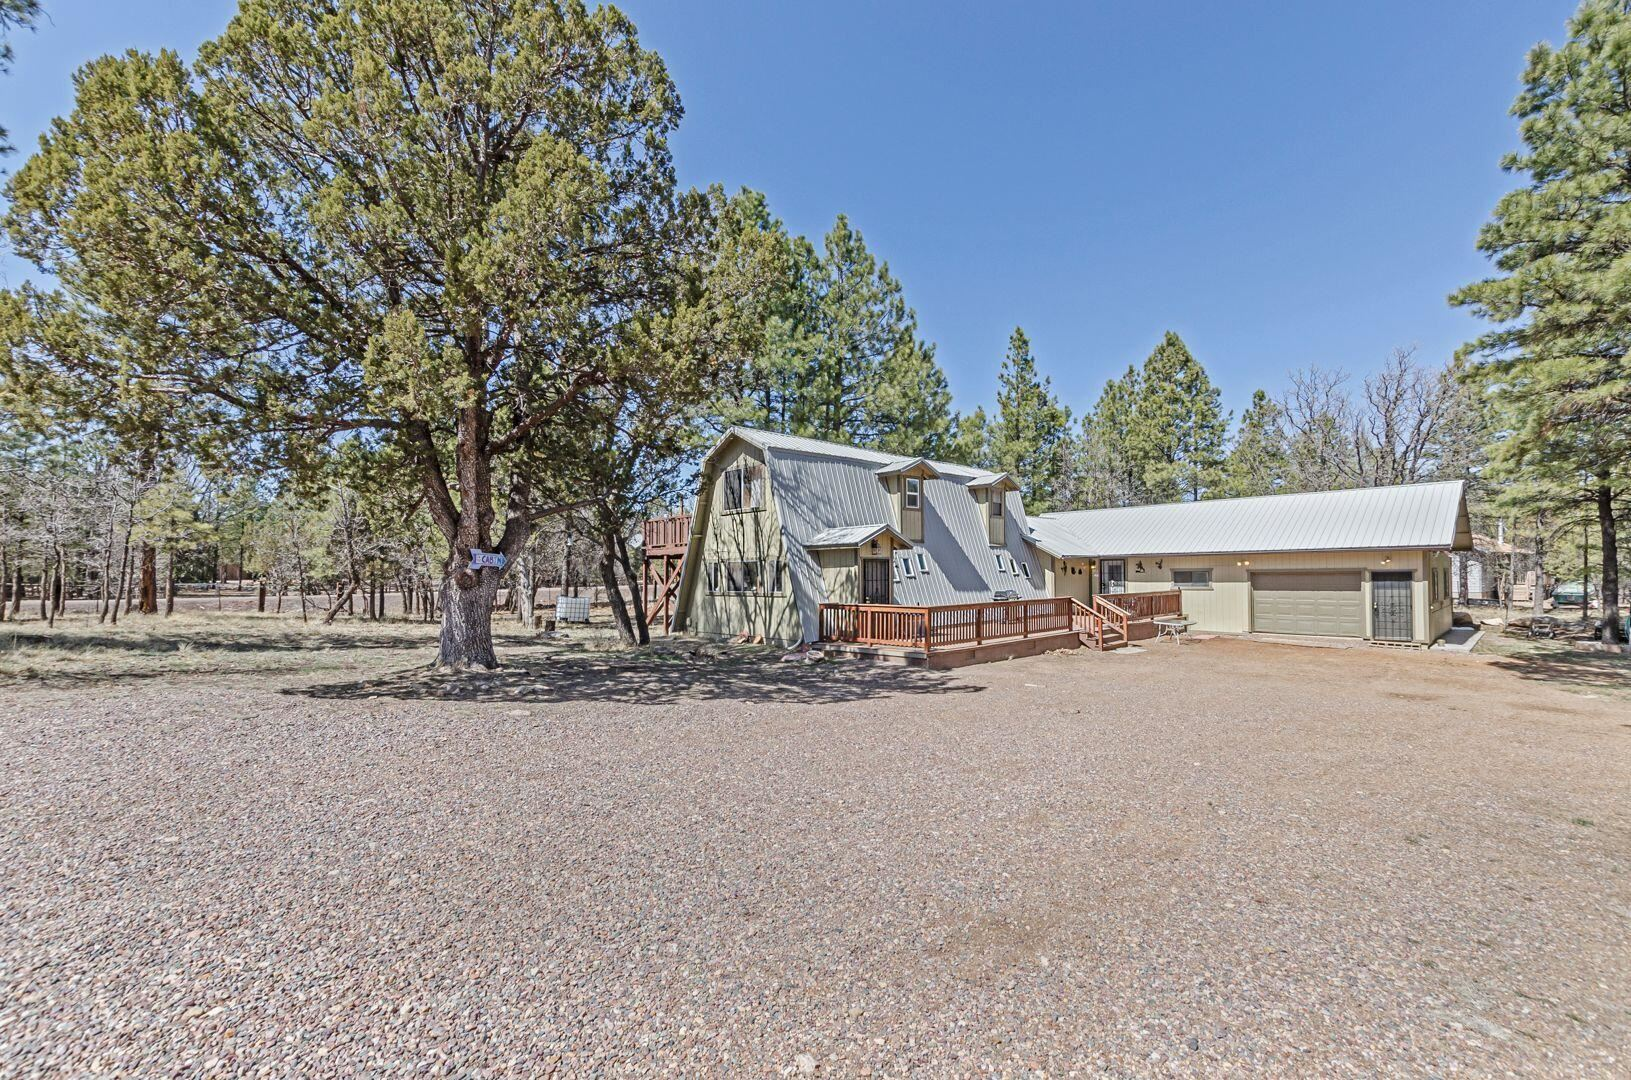 5181 Strawberry Lane #61, Happy Jack, AZ 86024 - MLS#: 84364